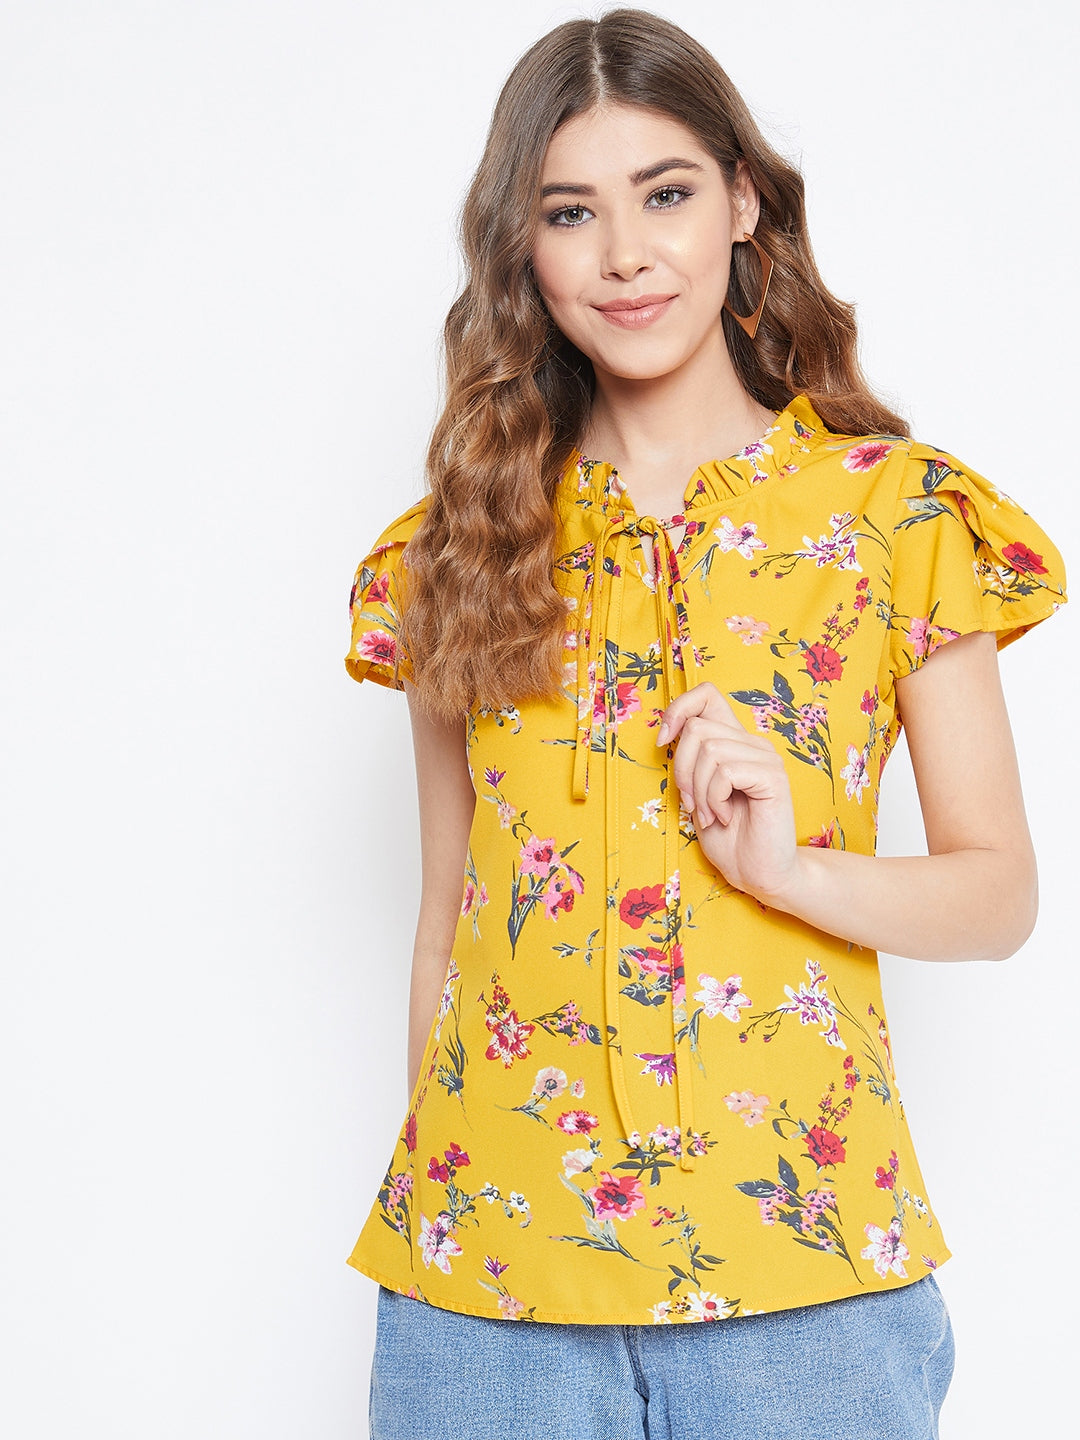 Berrylush Women Yellow Floral Printed Top